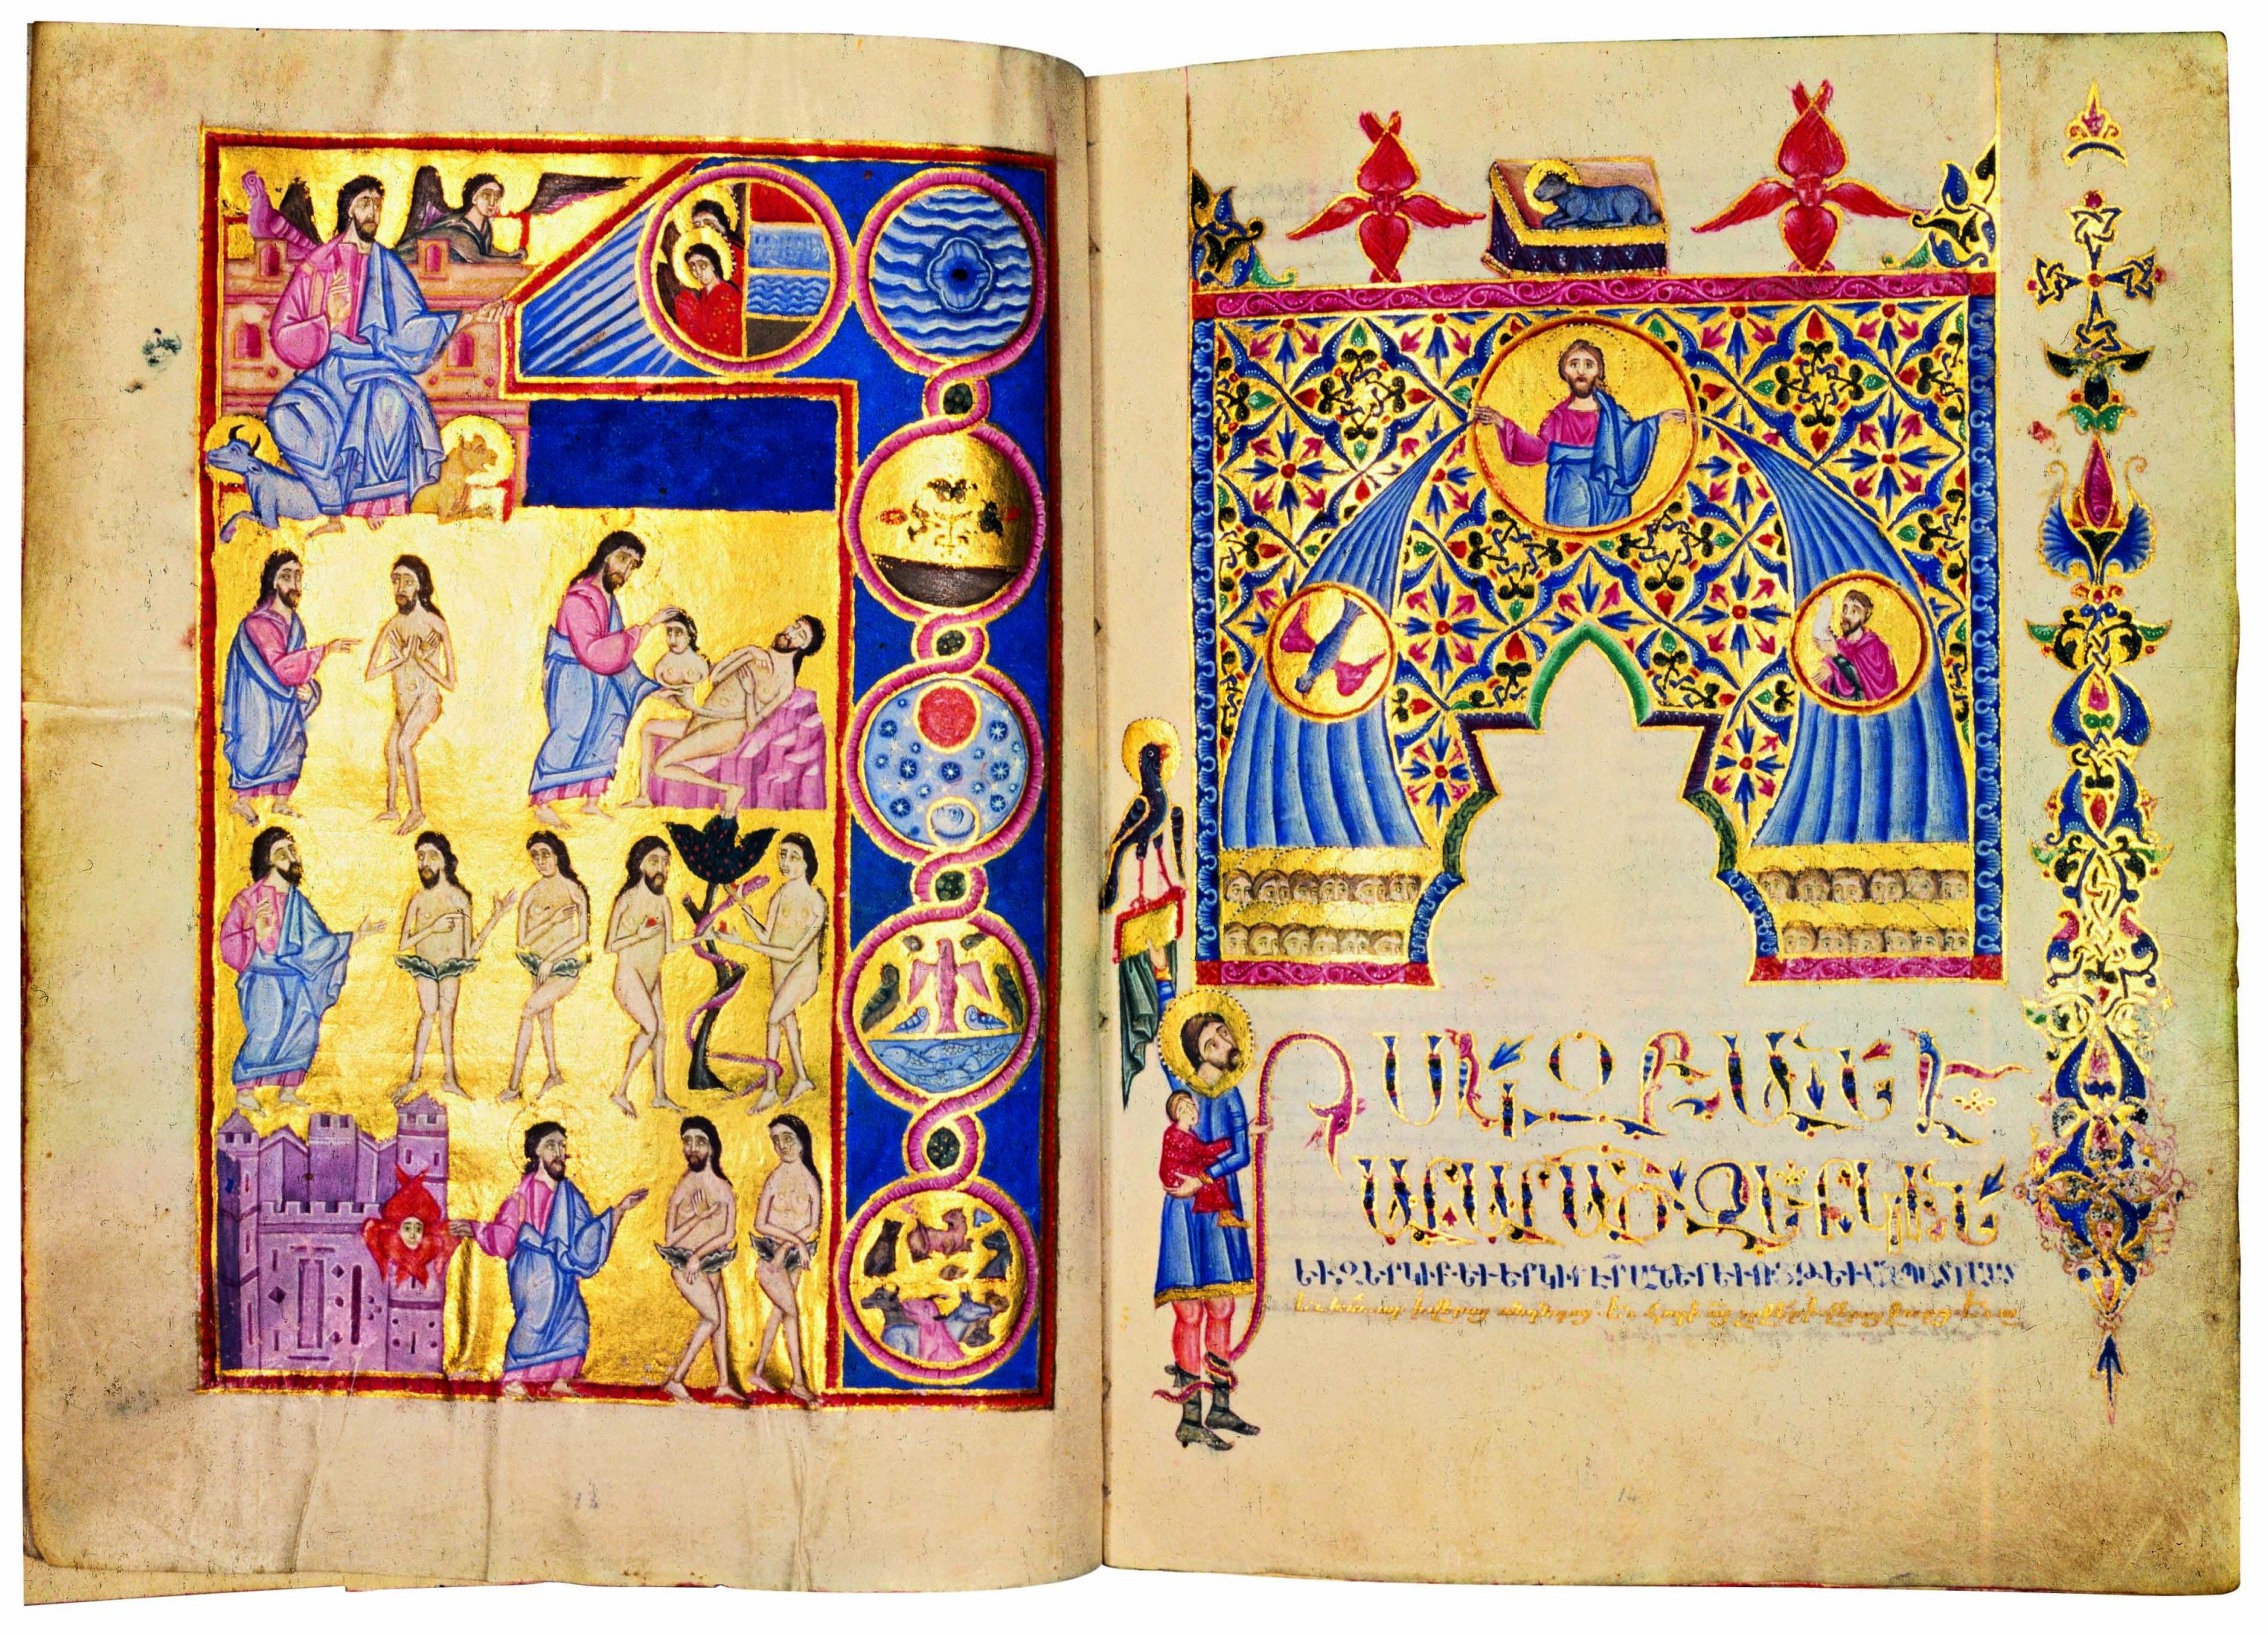 Armenian Bible, early 17th century, manuscript on parchment, 22.4 by 16.5 by 9 centimeters, selected from Calouste Gulbenkian Museum, Lisbon, Portugal. (Courtesy of SSM)